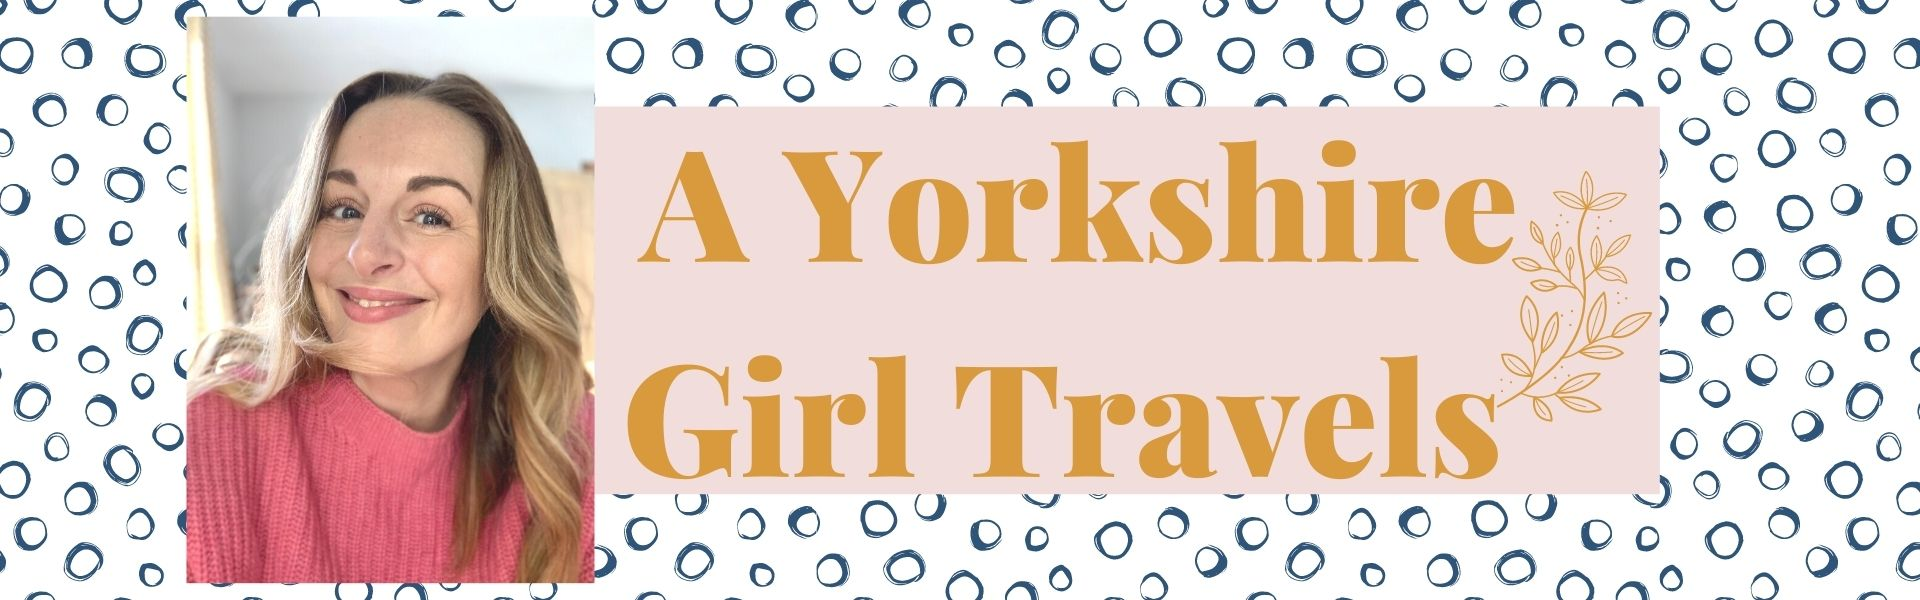 A Yorkshire Girl Travels